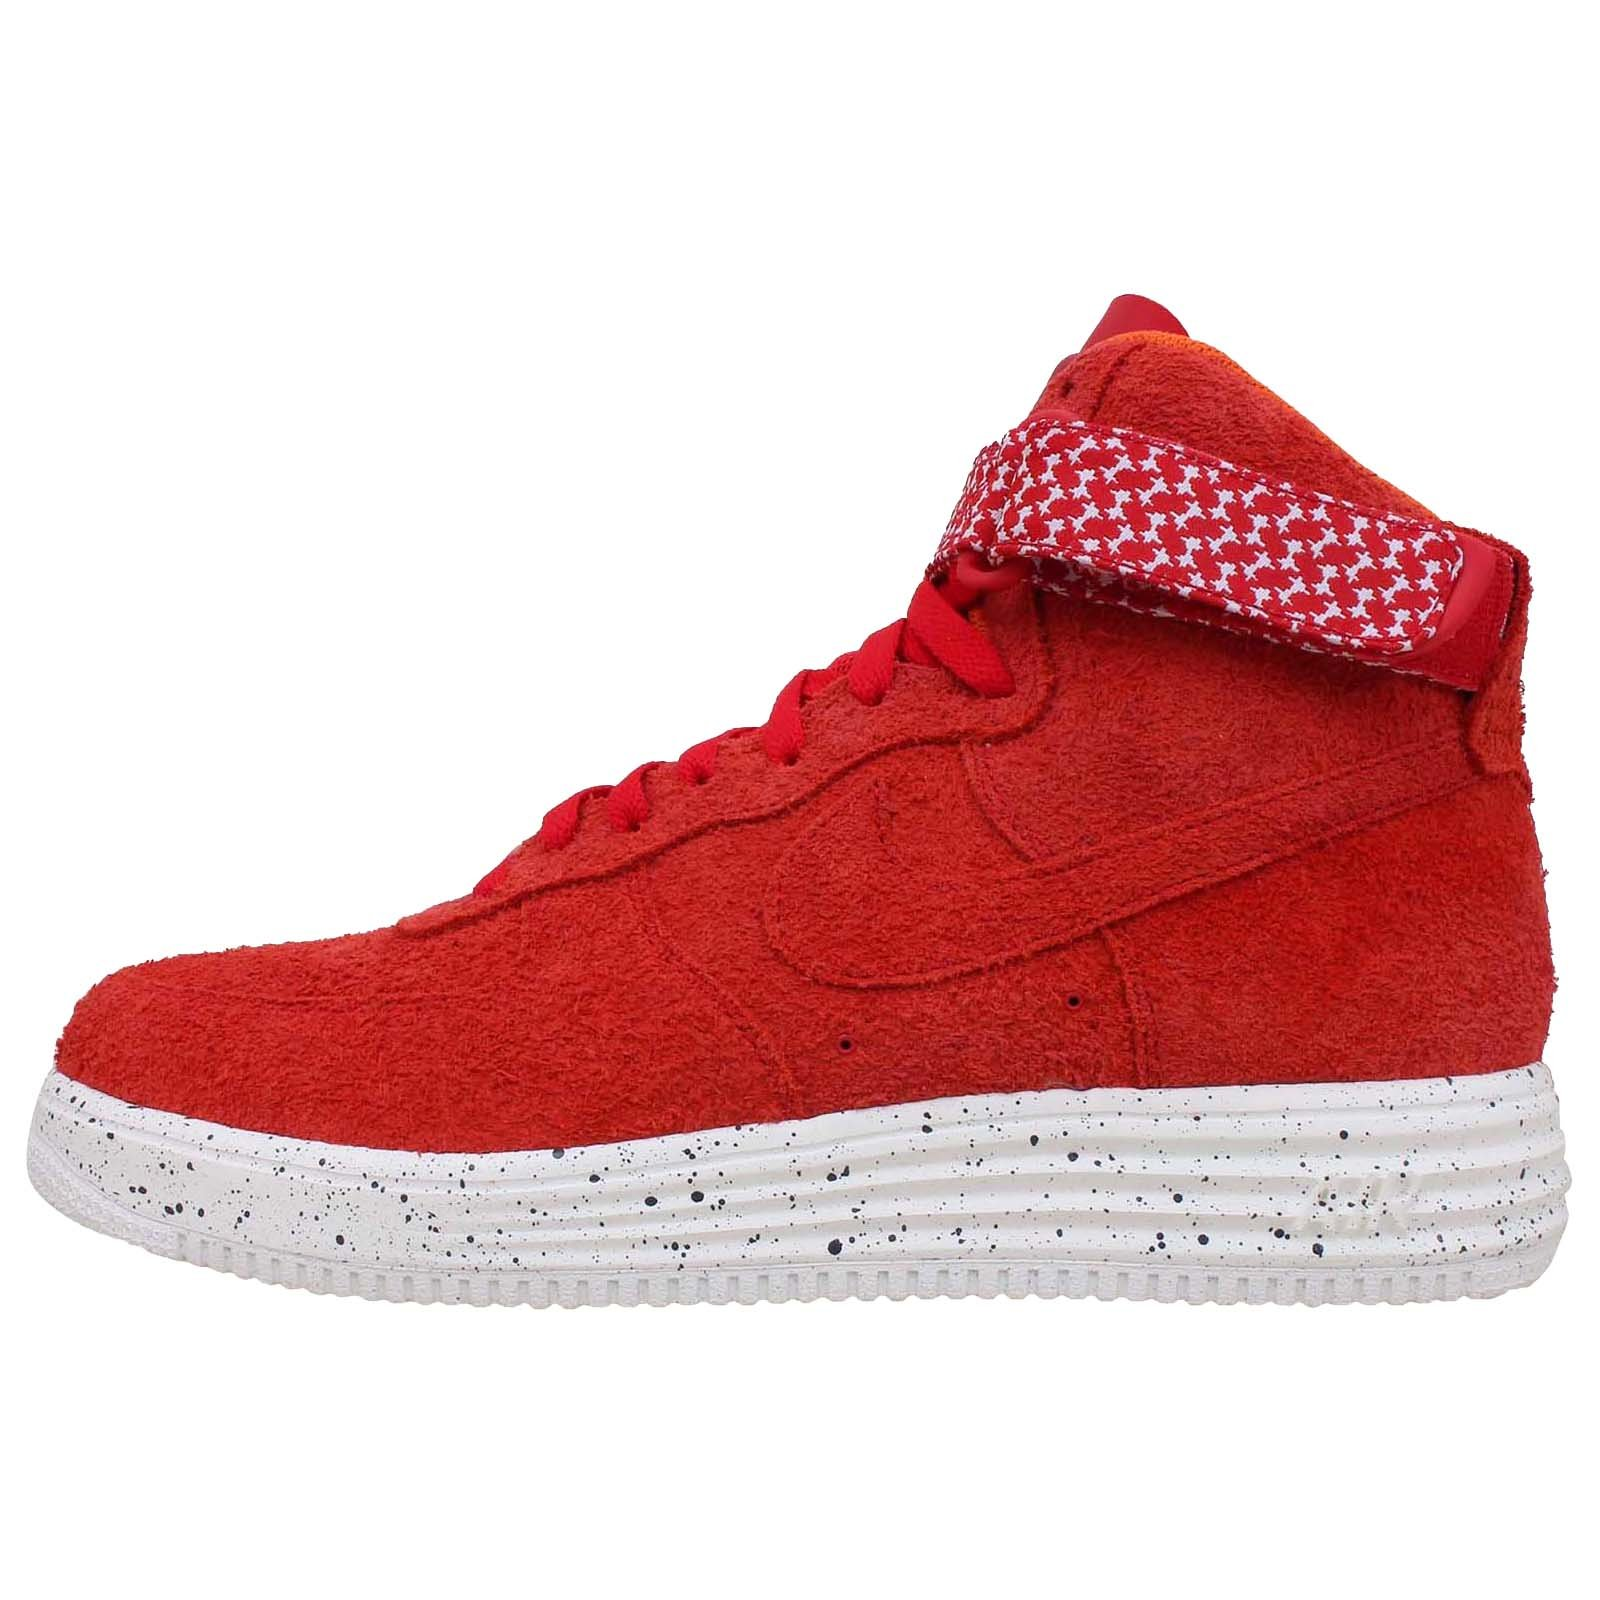 Nike Men's Lunar Force 1 HI UNDFTD SP, UNIVERSITY RED/UNIVERSITY RED